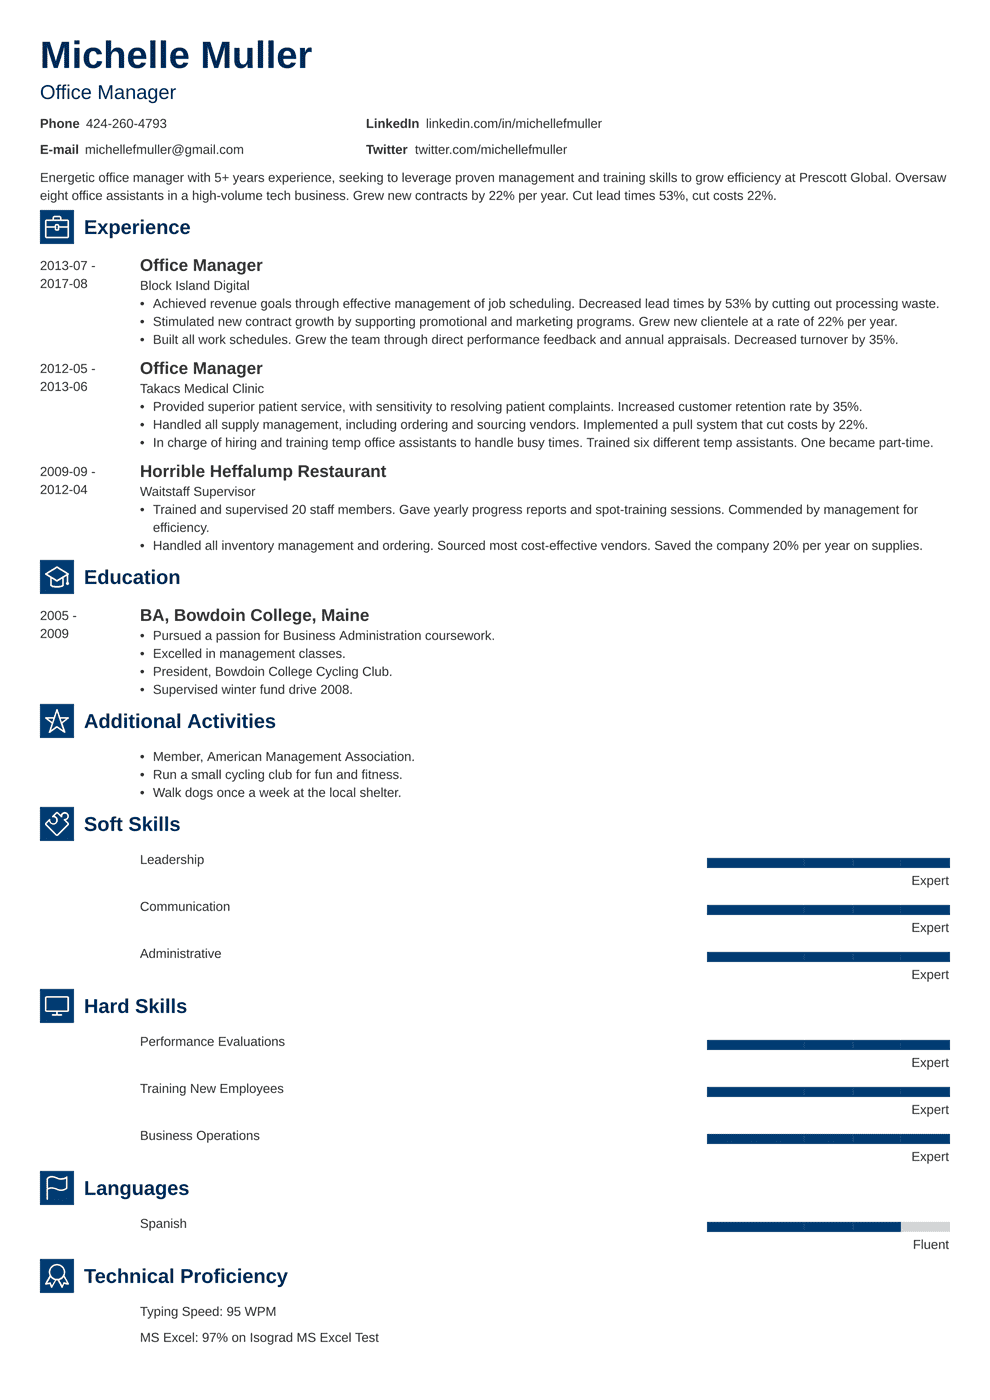 Office Manager Resume: Sample & Complete Guide [+20 Examples]